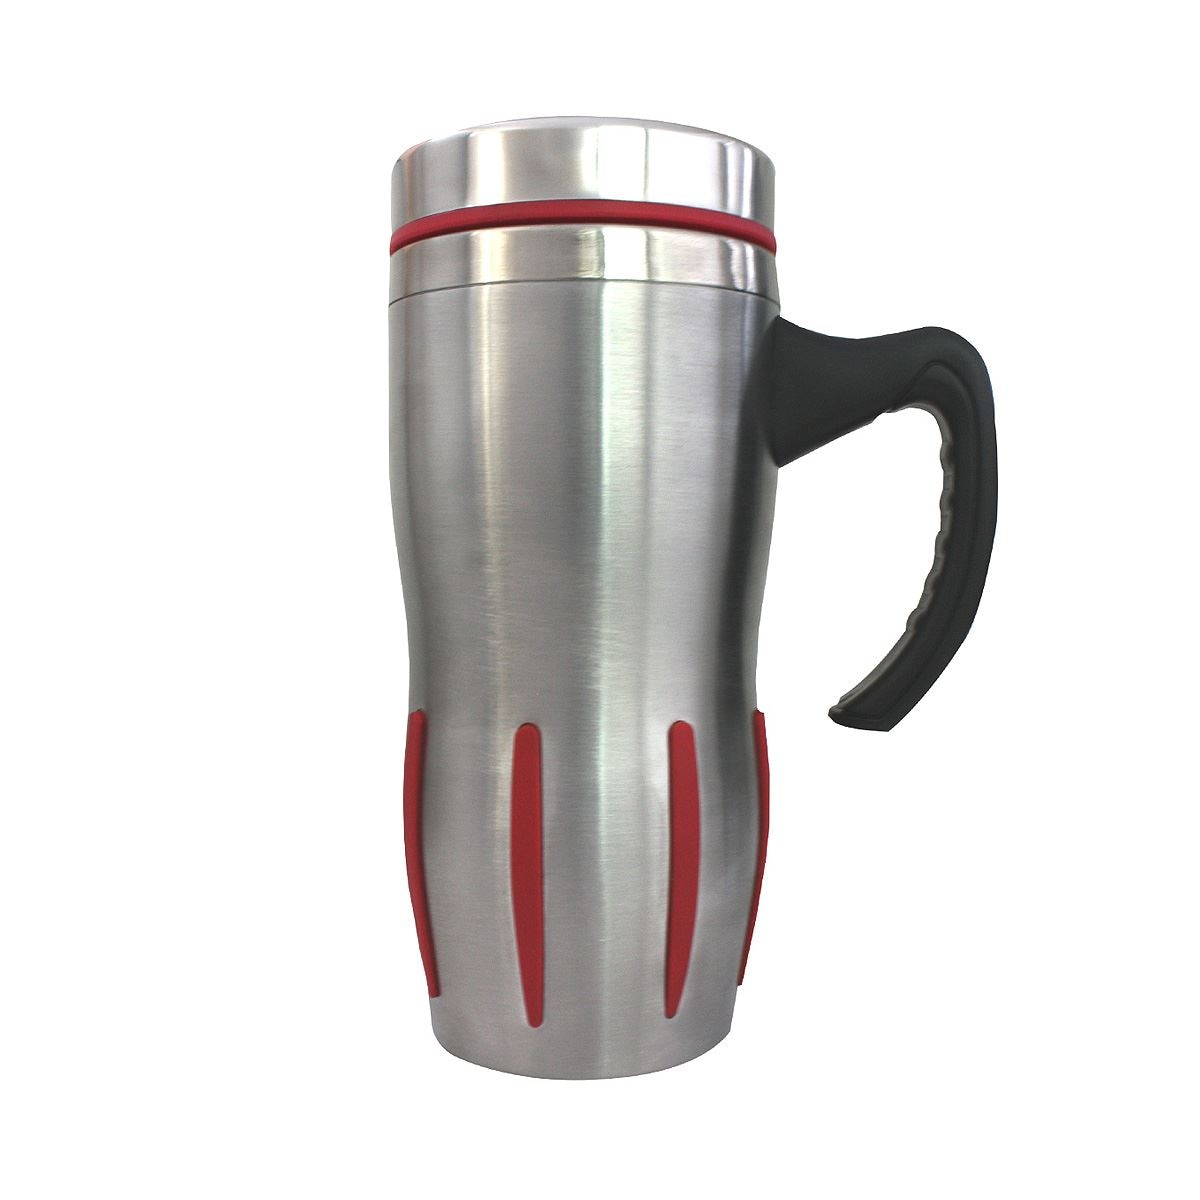 Taza steiner de  acero inoxidable con asa 450ml  - Sanborns